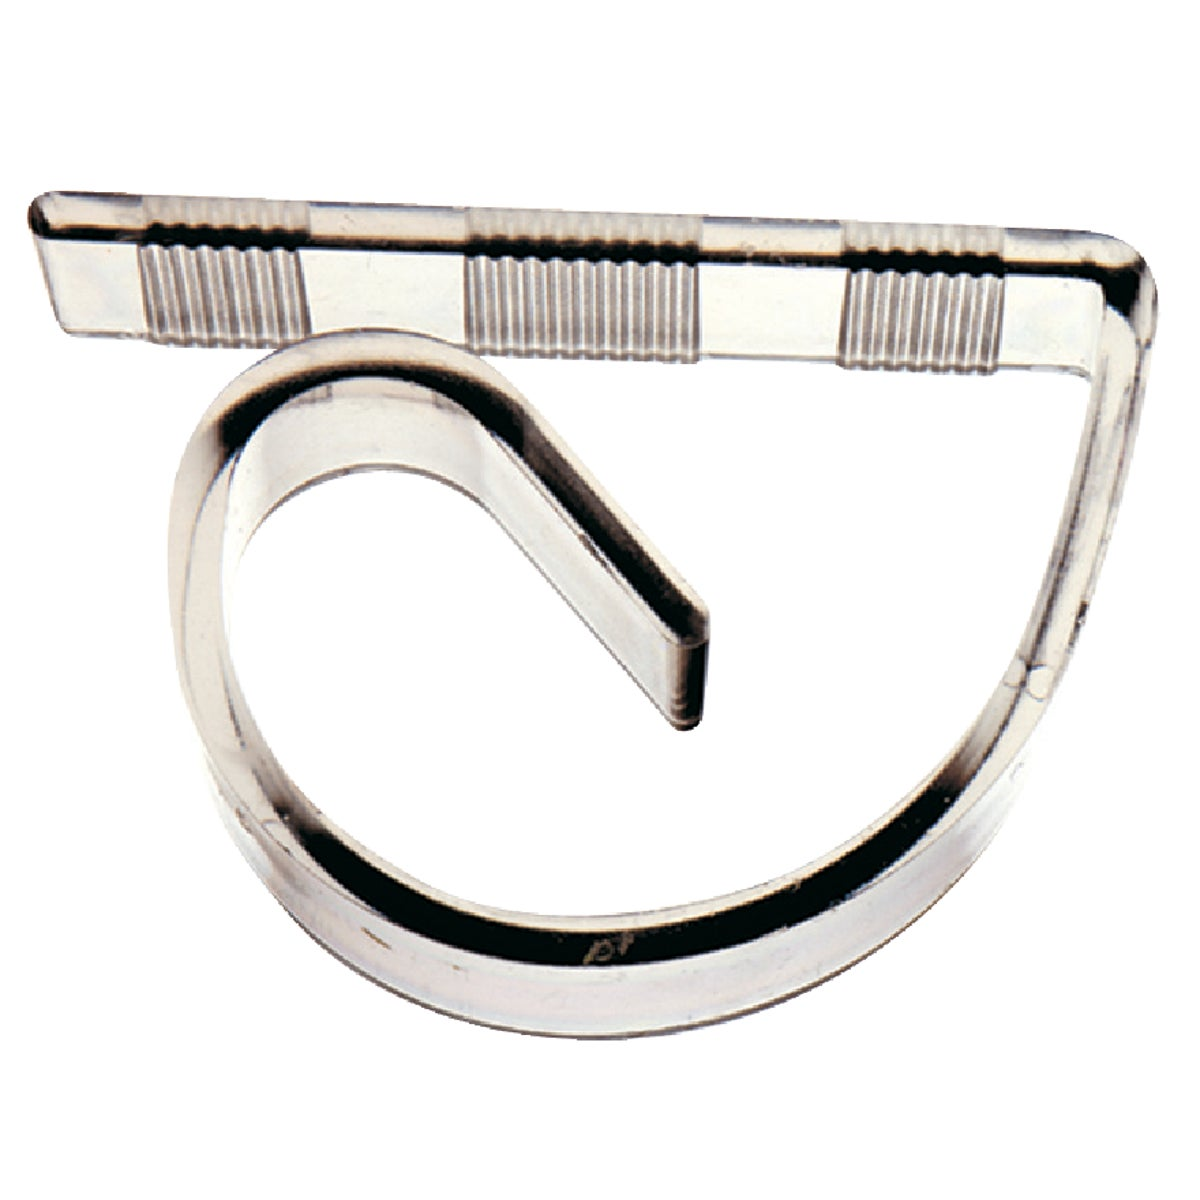 TABLECLOTH CLIPS - 8400-99-3040 by Adams Mfg